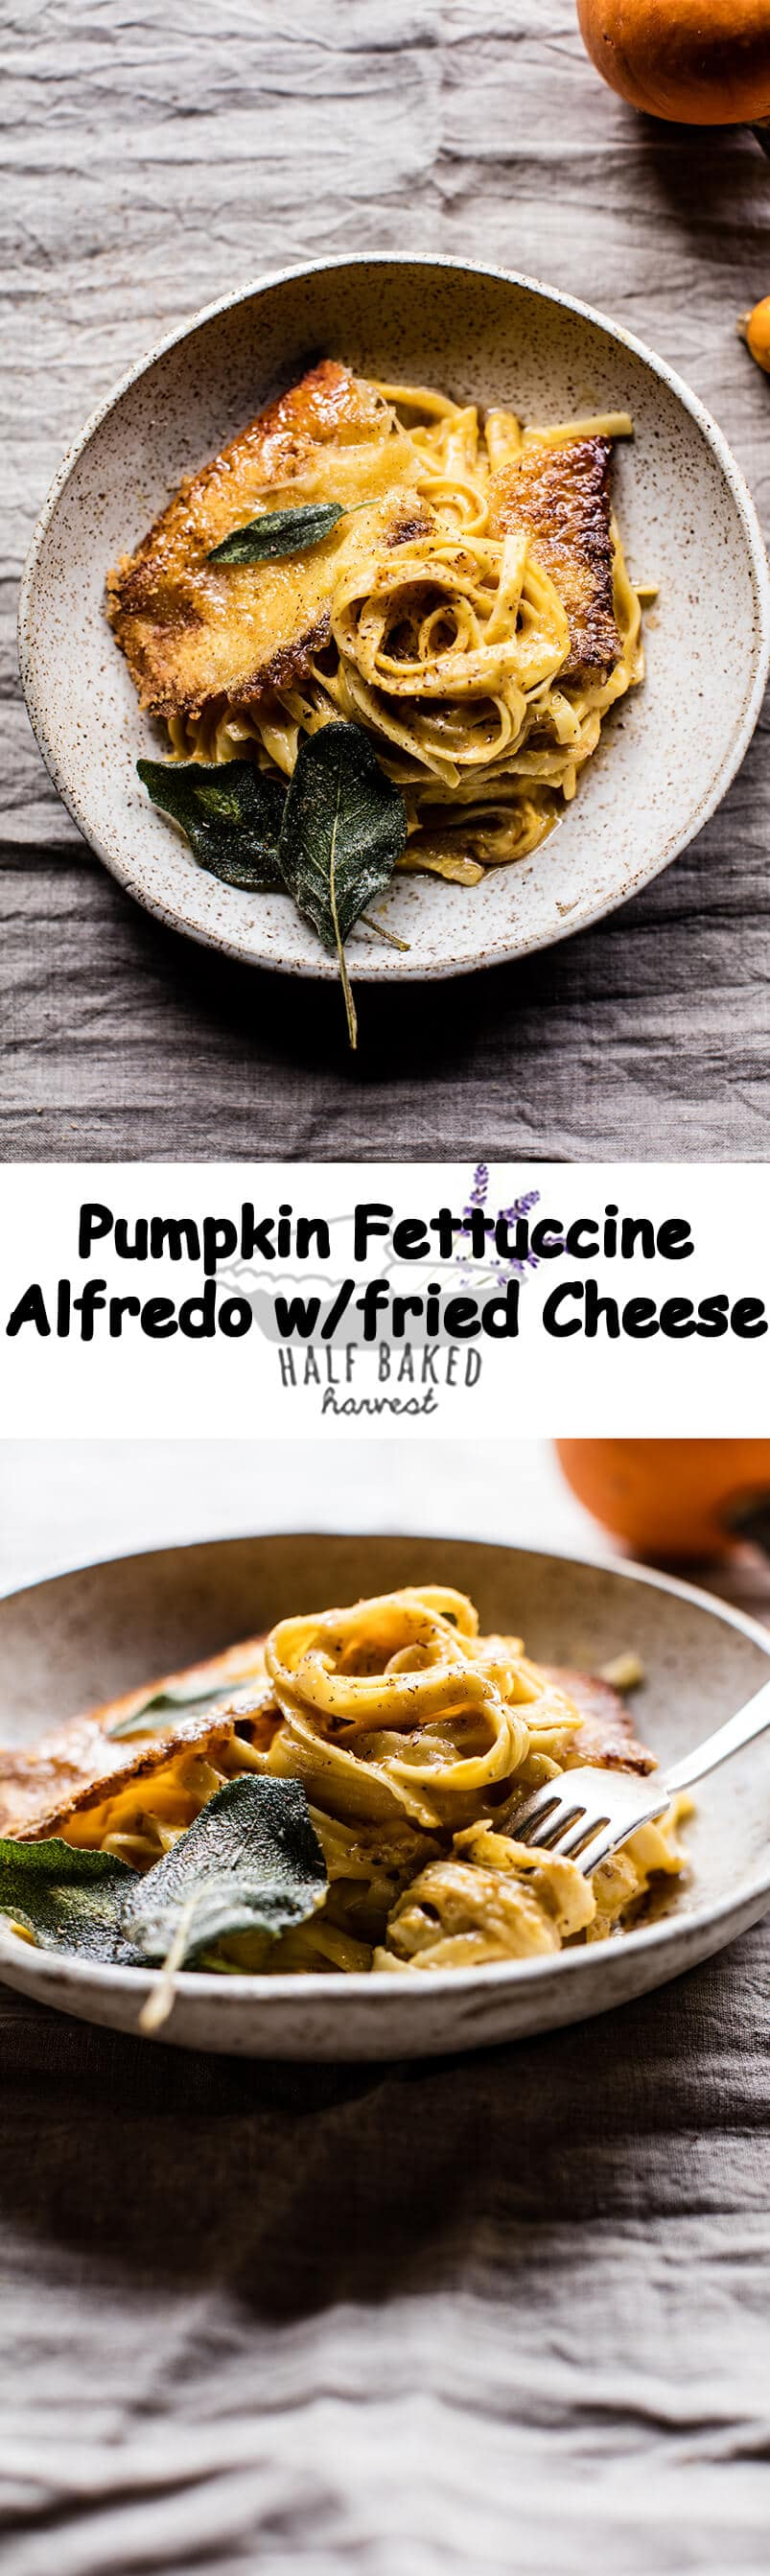 Brown Butter Pumpkin Fettuccine Alfredo with Fried Cheese | halfbakedharvest.com @hbharvest